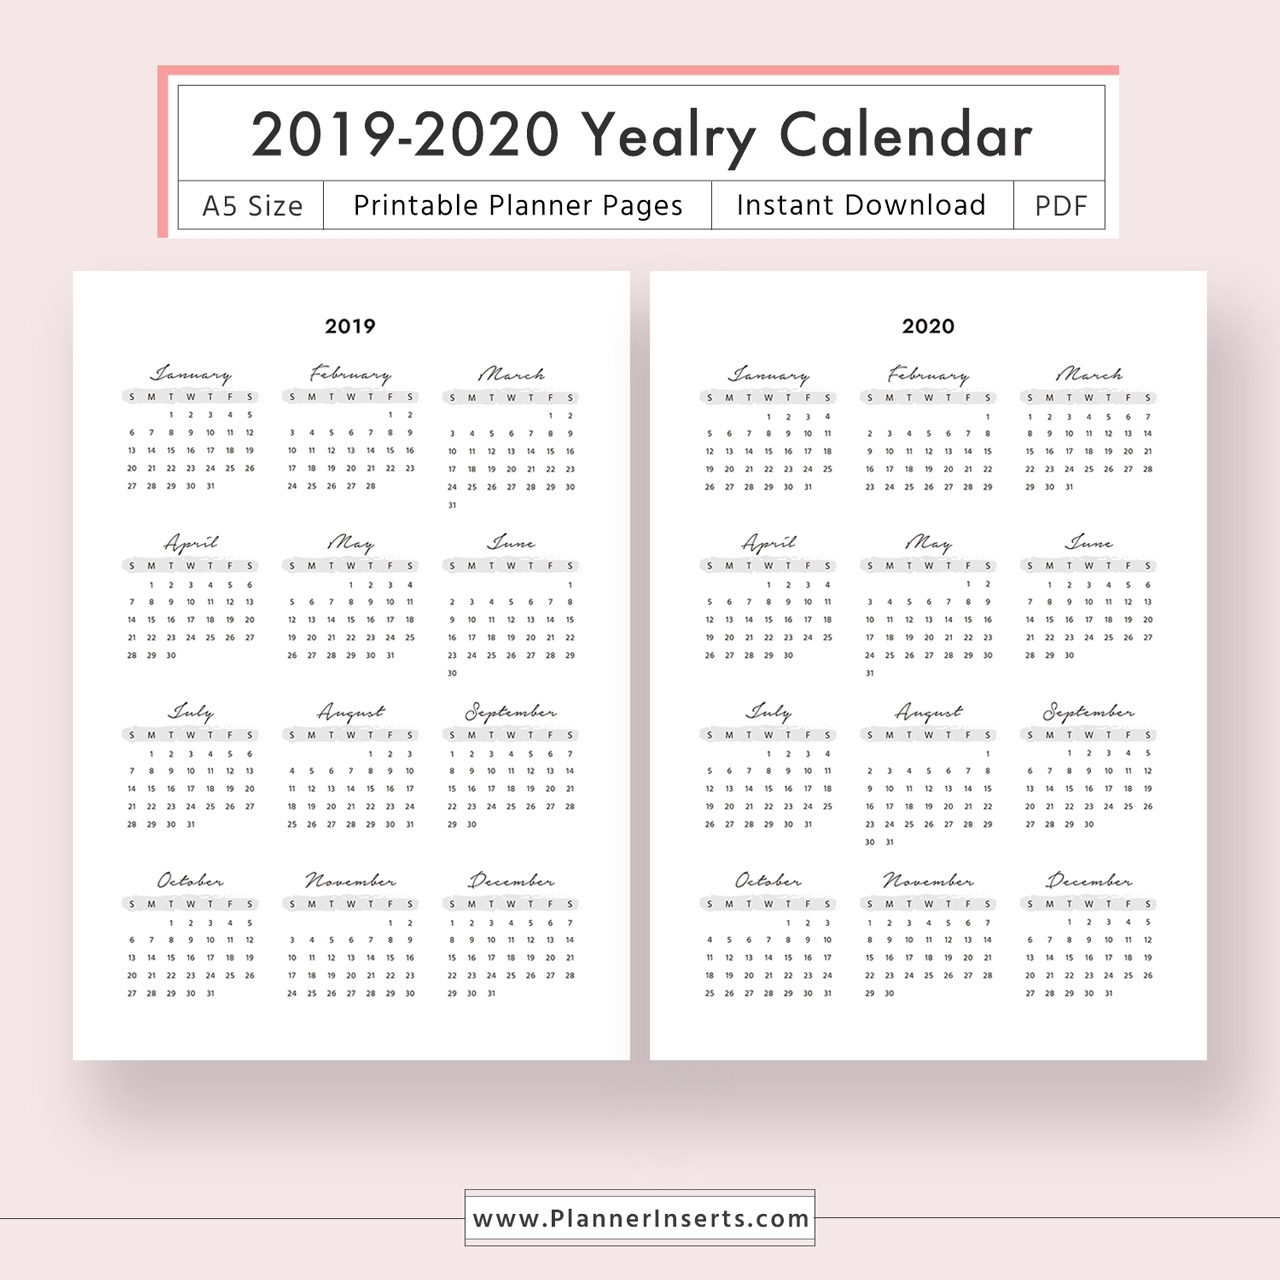 Year At A Glance 2020 - Colona.rsd7 with 2020 Year At A Glance Printable Calendar